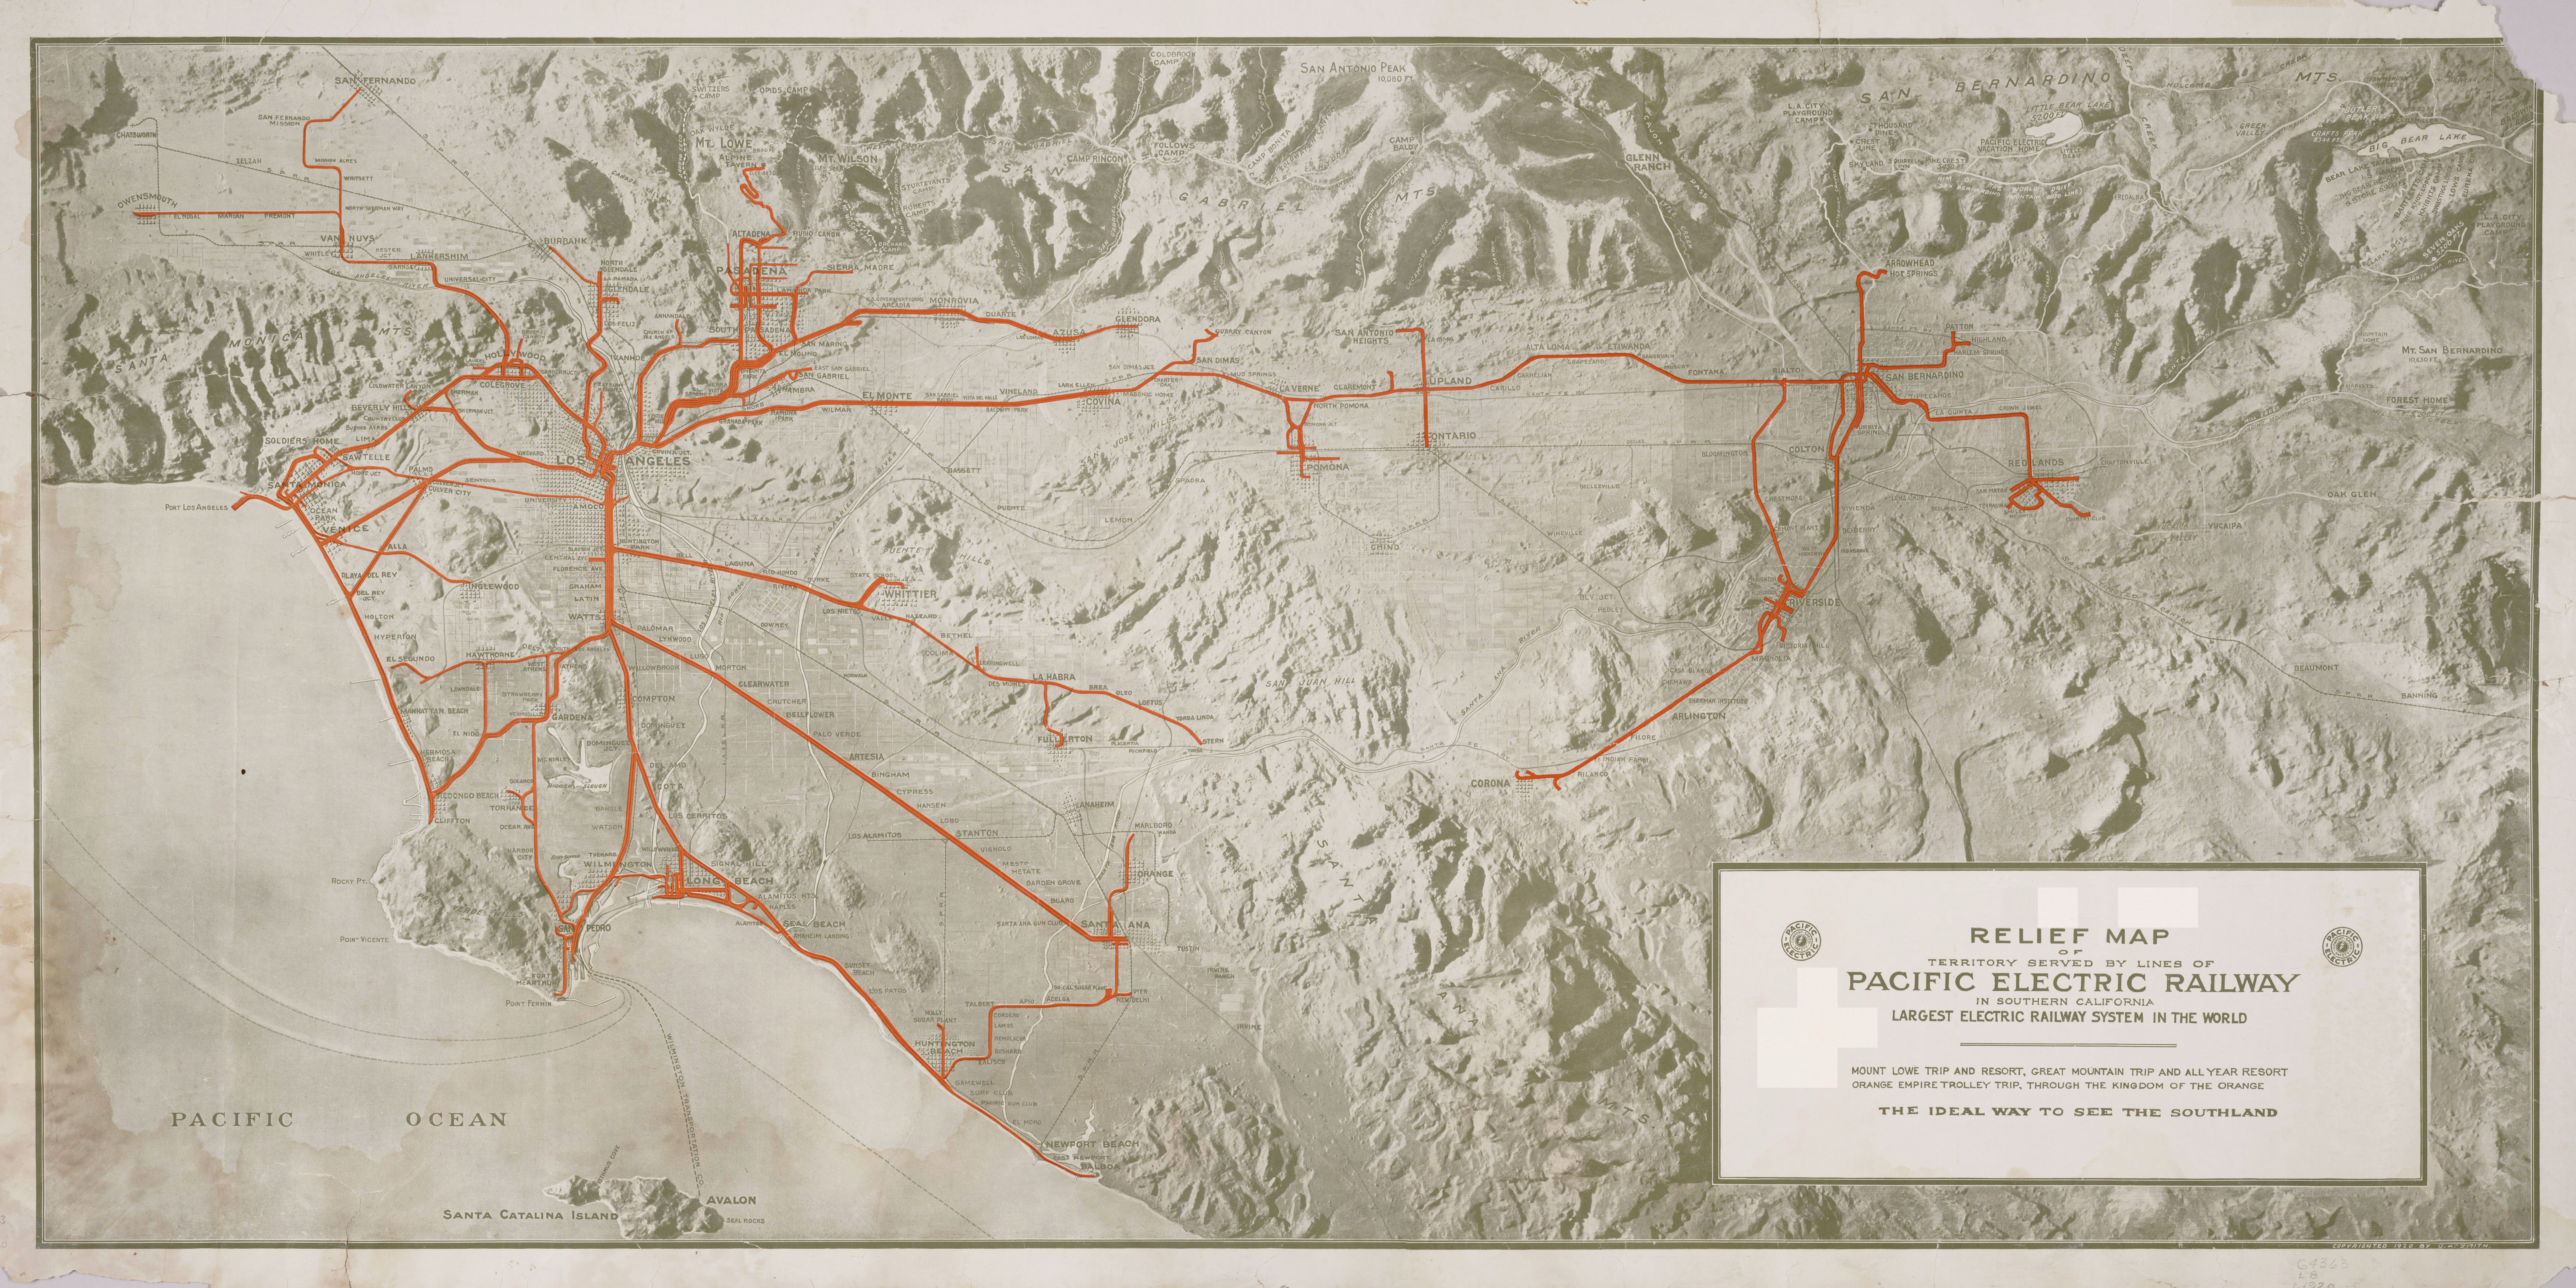 Relief_map_Pacific_Electric_Railway